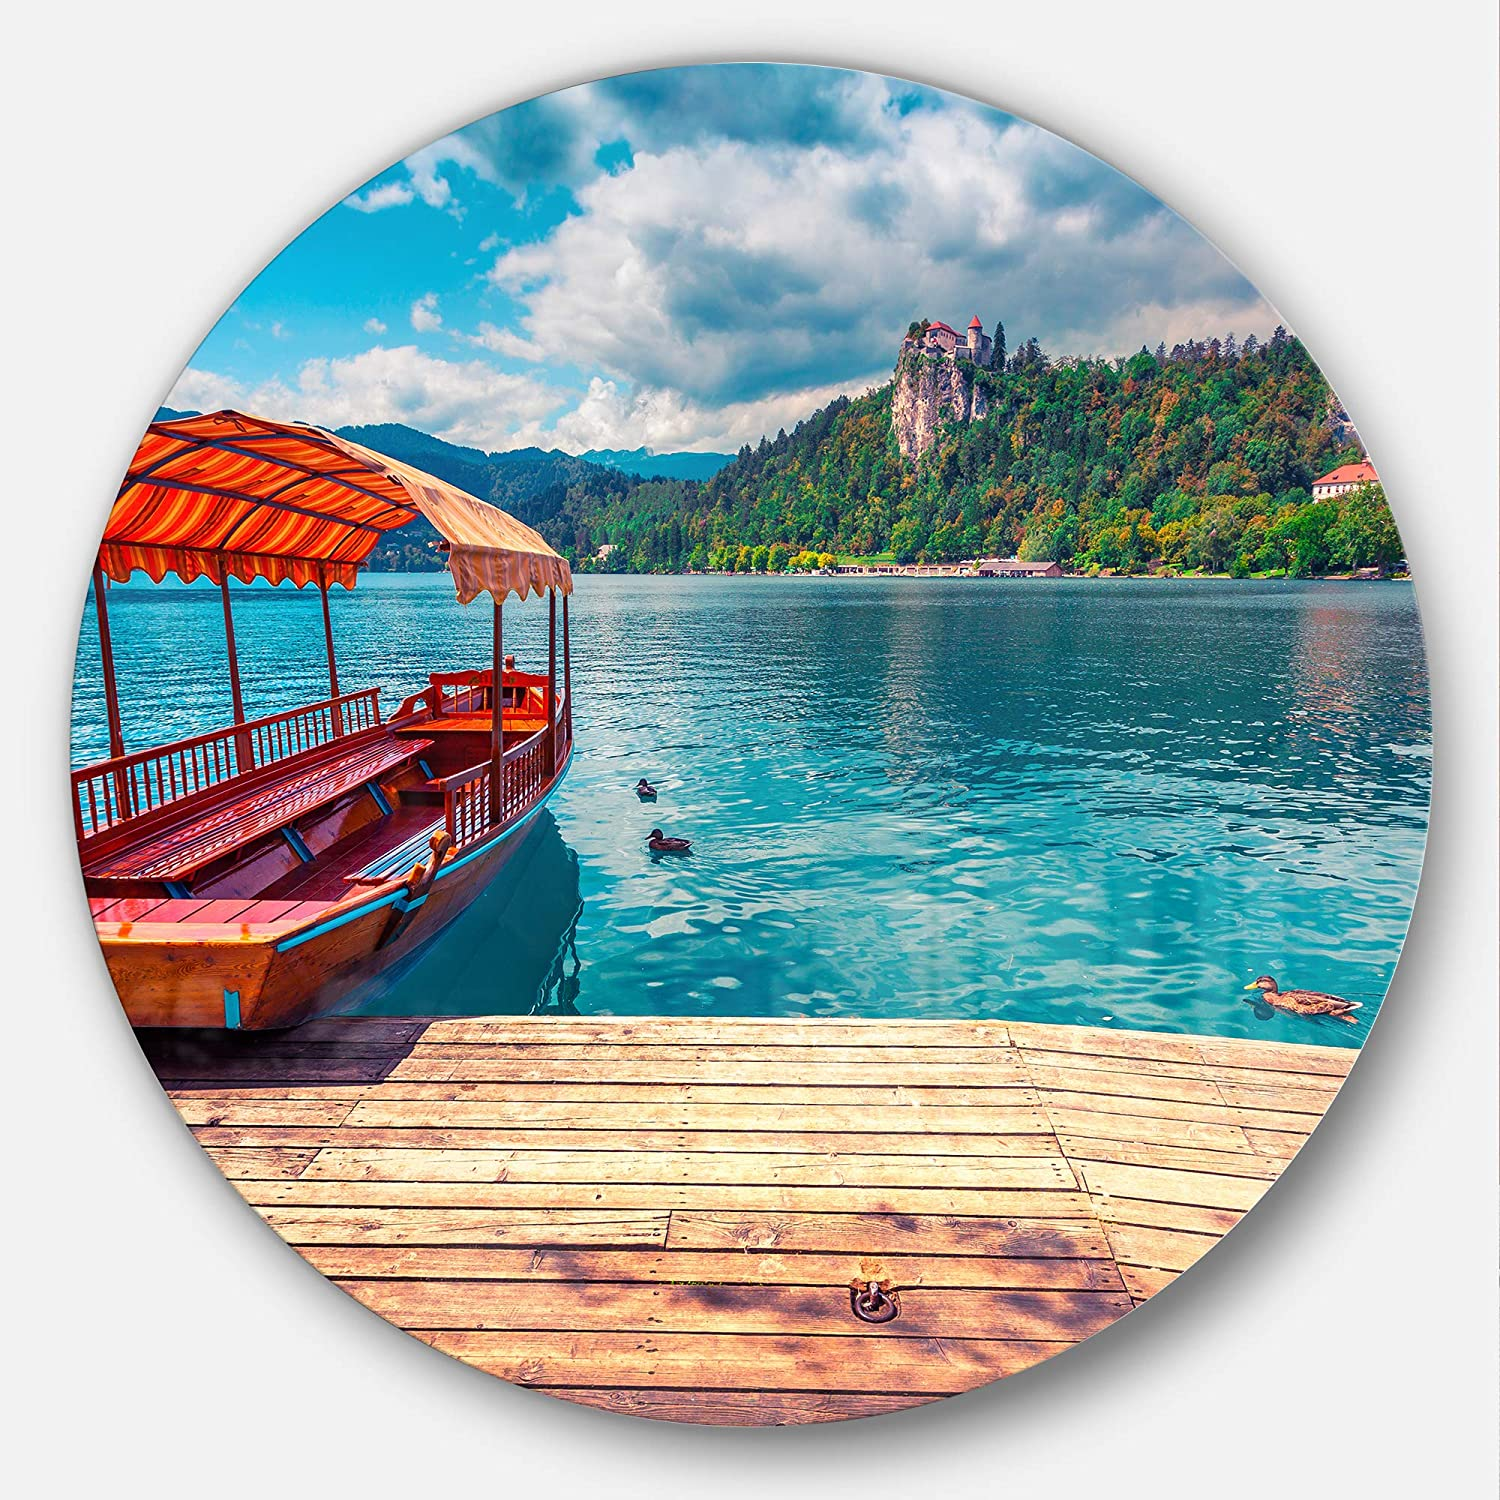 Designart Mt14574 C11 Boat In Lake Bled In Julian Alps Landscape Art Circle Wall Art Disc Of 11 Blue 11 X 11 Amazon In Home Kitchen